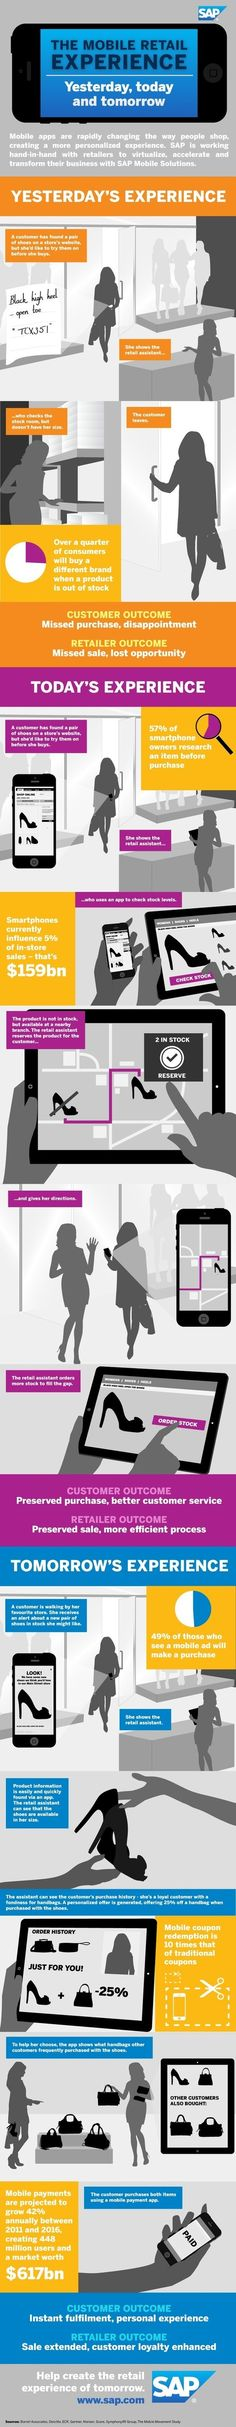 The Mobile Retail Experience Then & Now #Infographic #SMM #Marketing #Retail #OnlineShopping